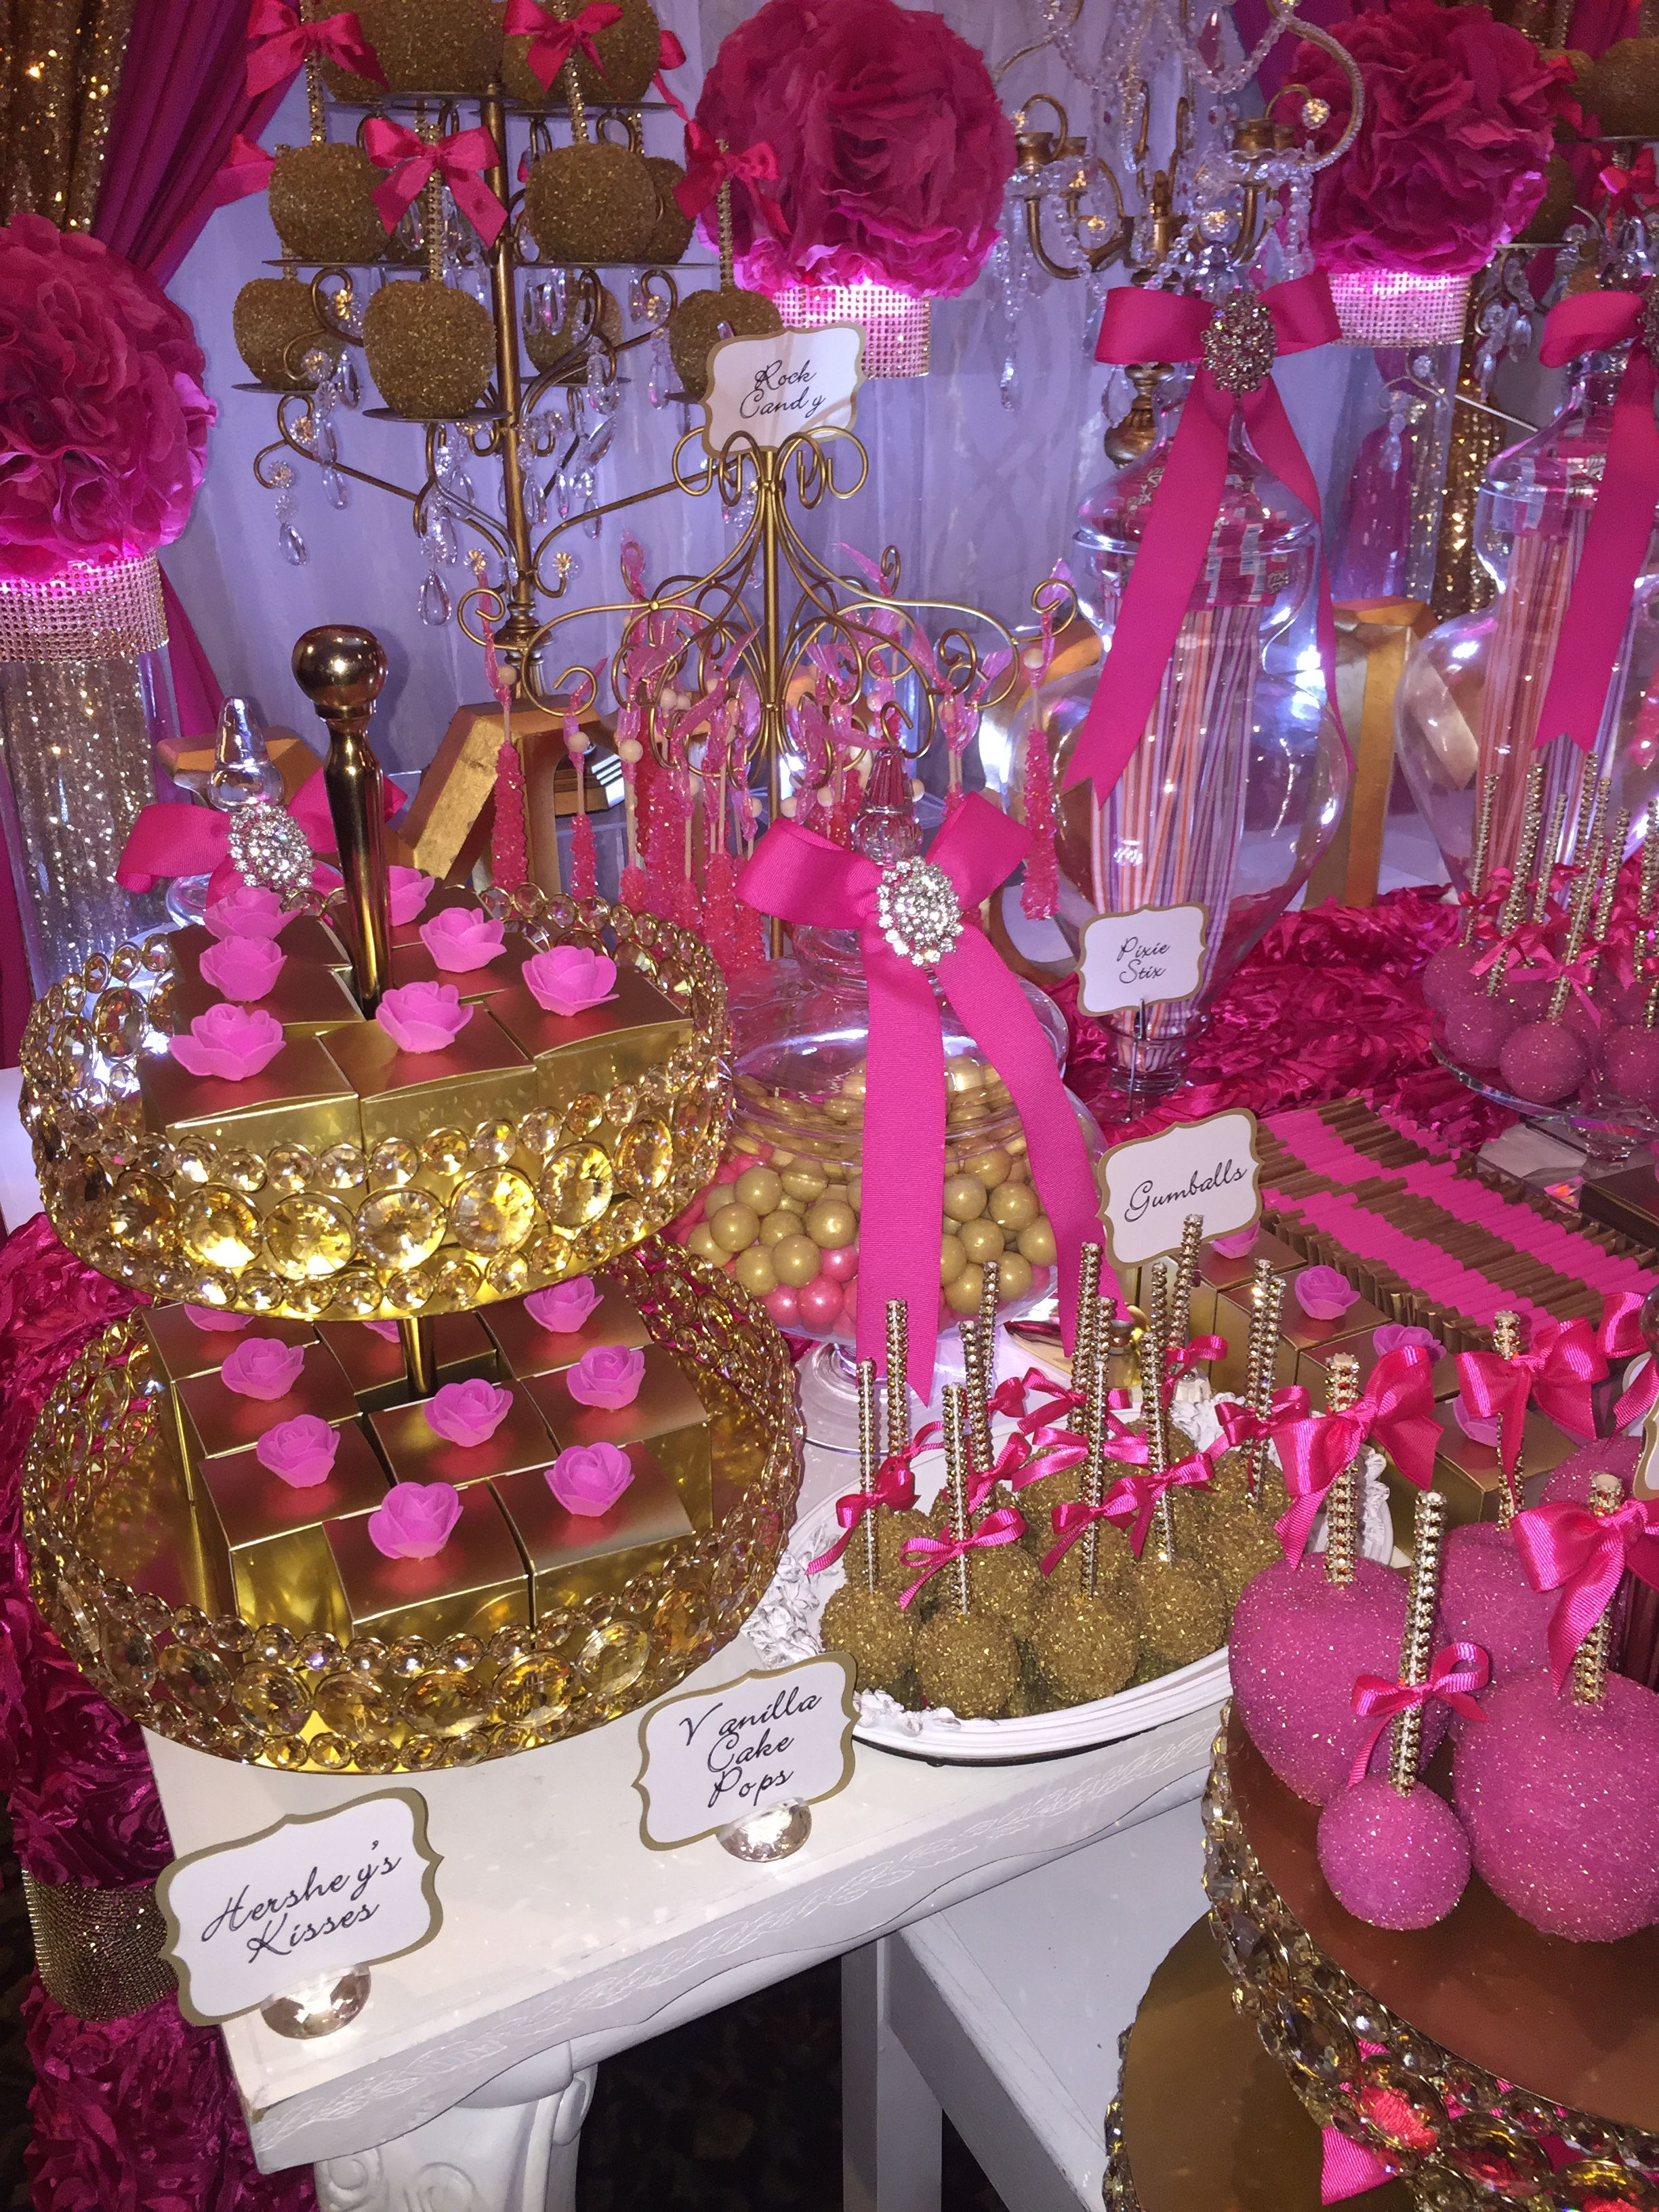 Astounding Fuschia Pink And Gold Wedding Sweets Table With Chocolate Download Free Architecture Designs Embacsunscenecom